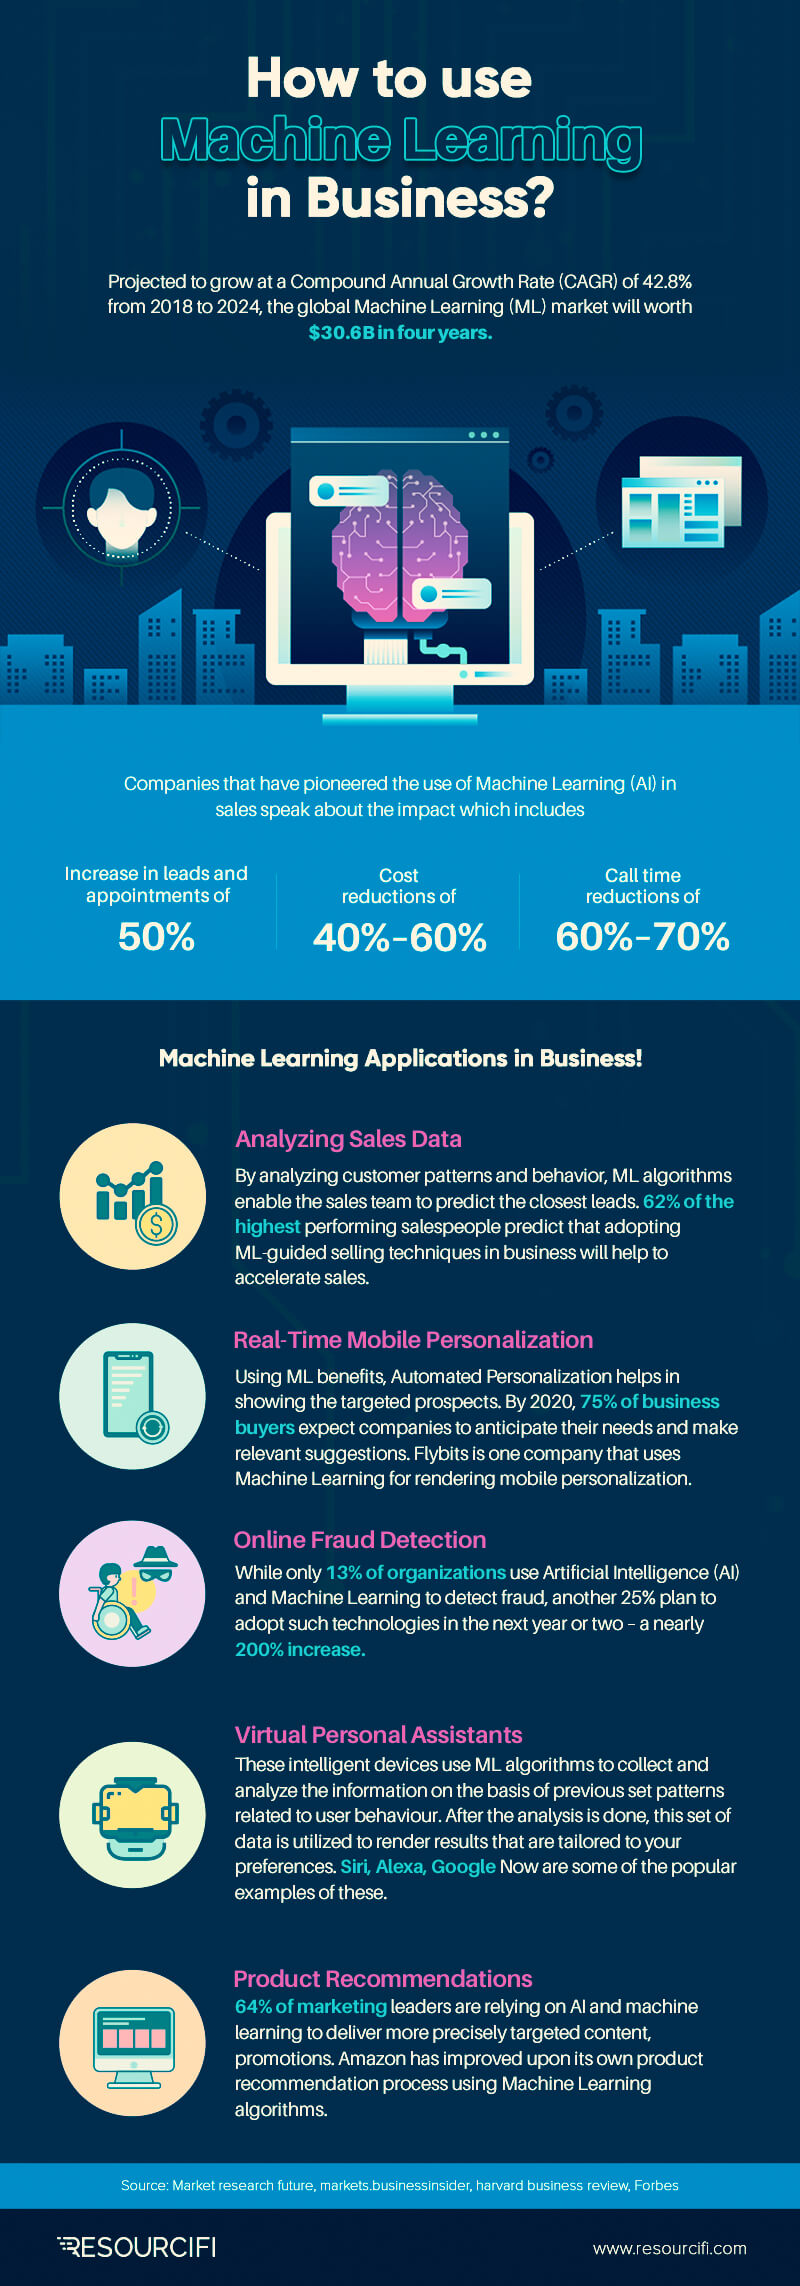 Machine Learning Applications in Business